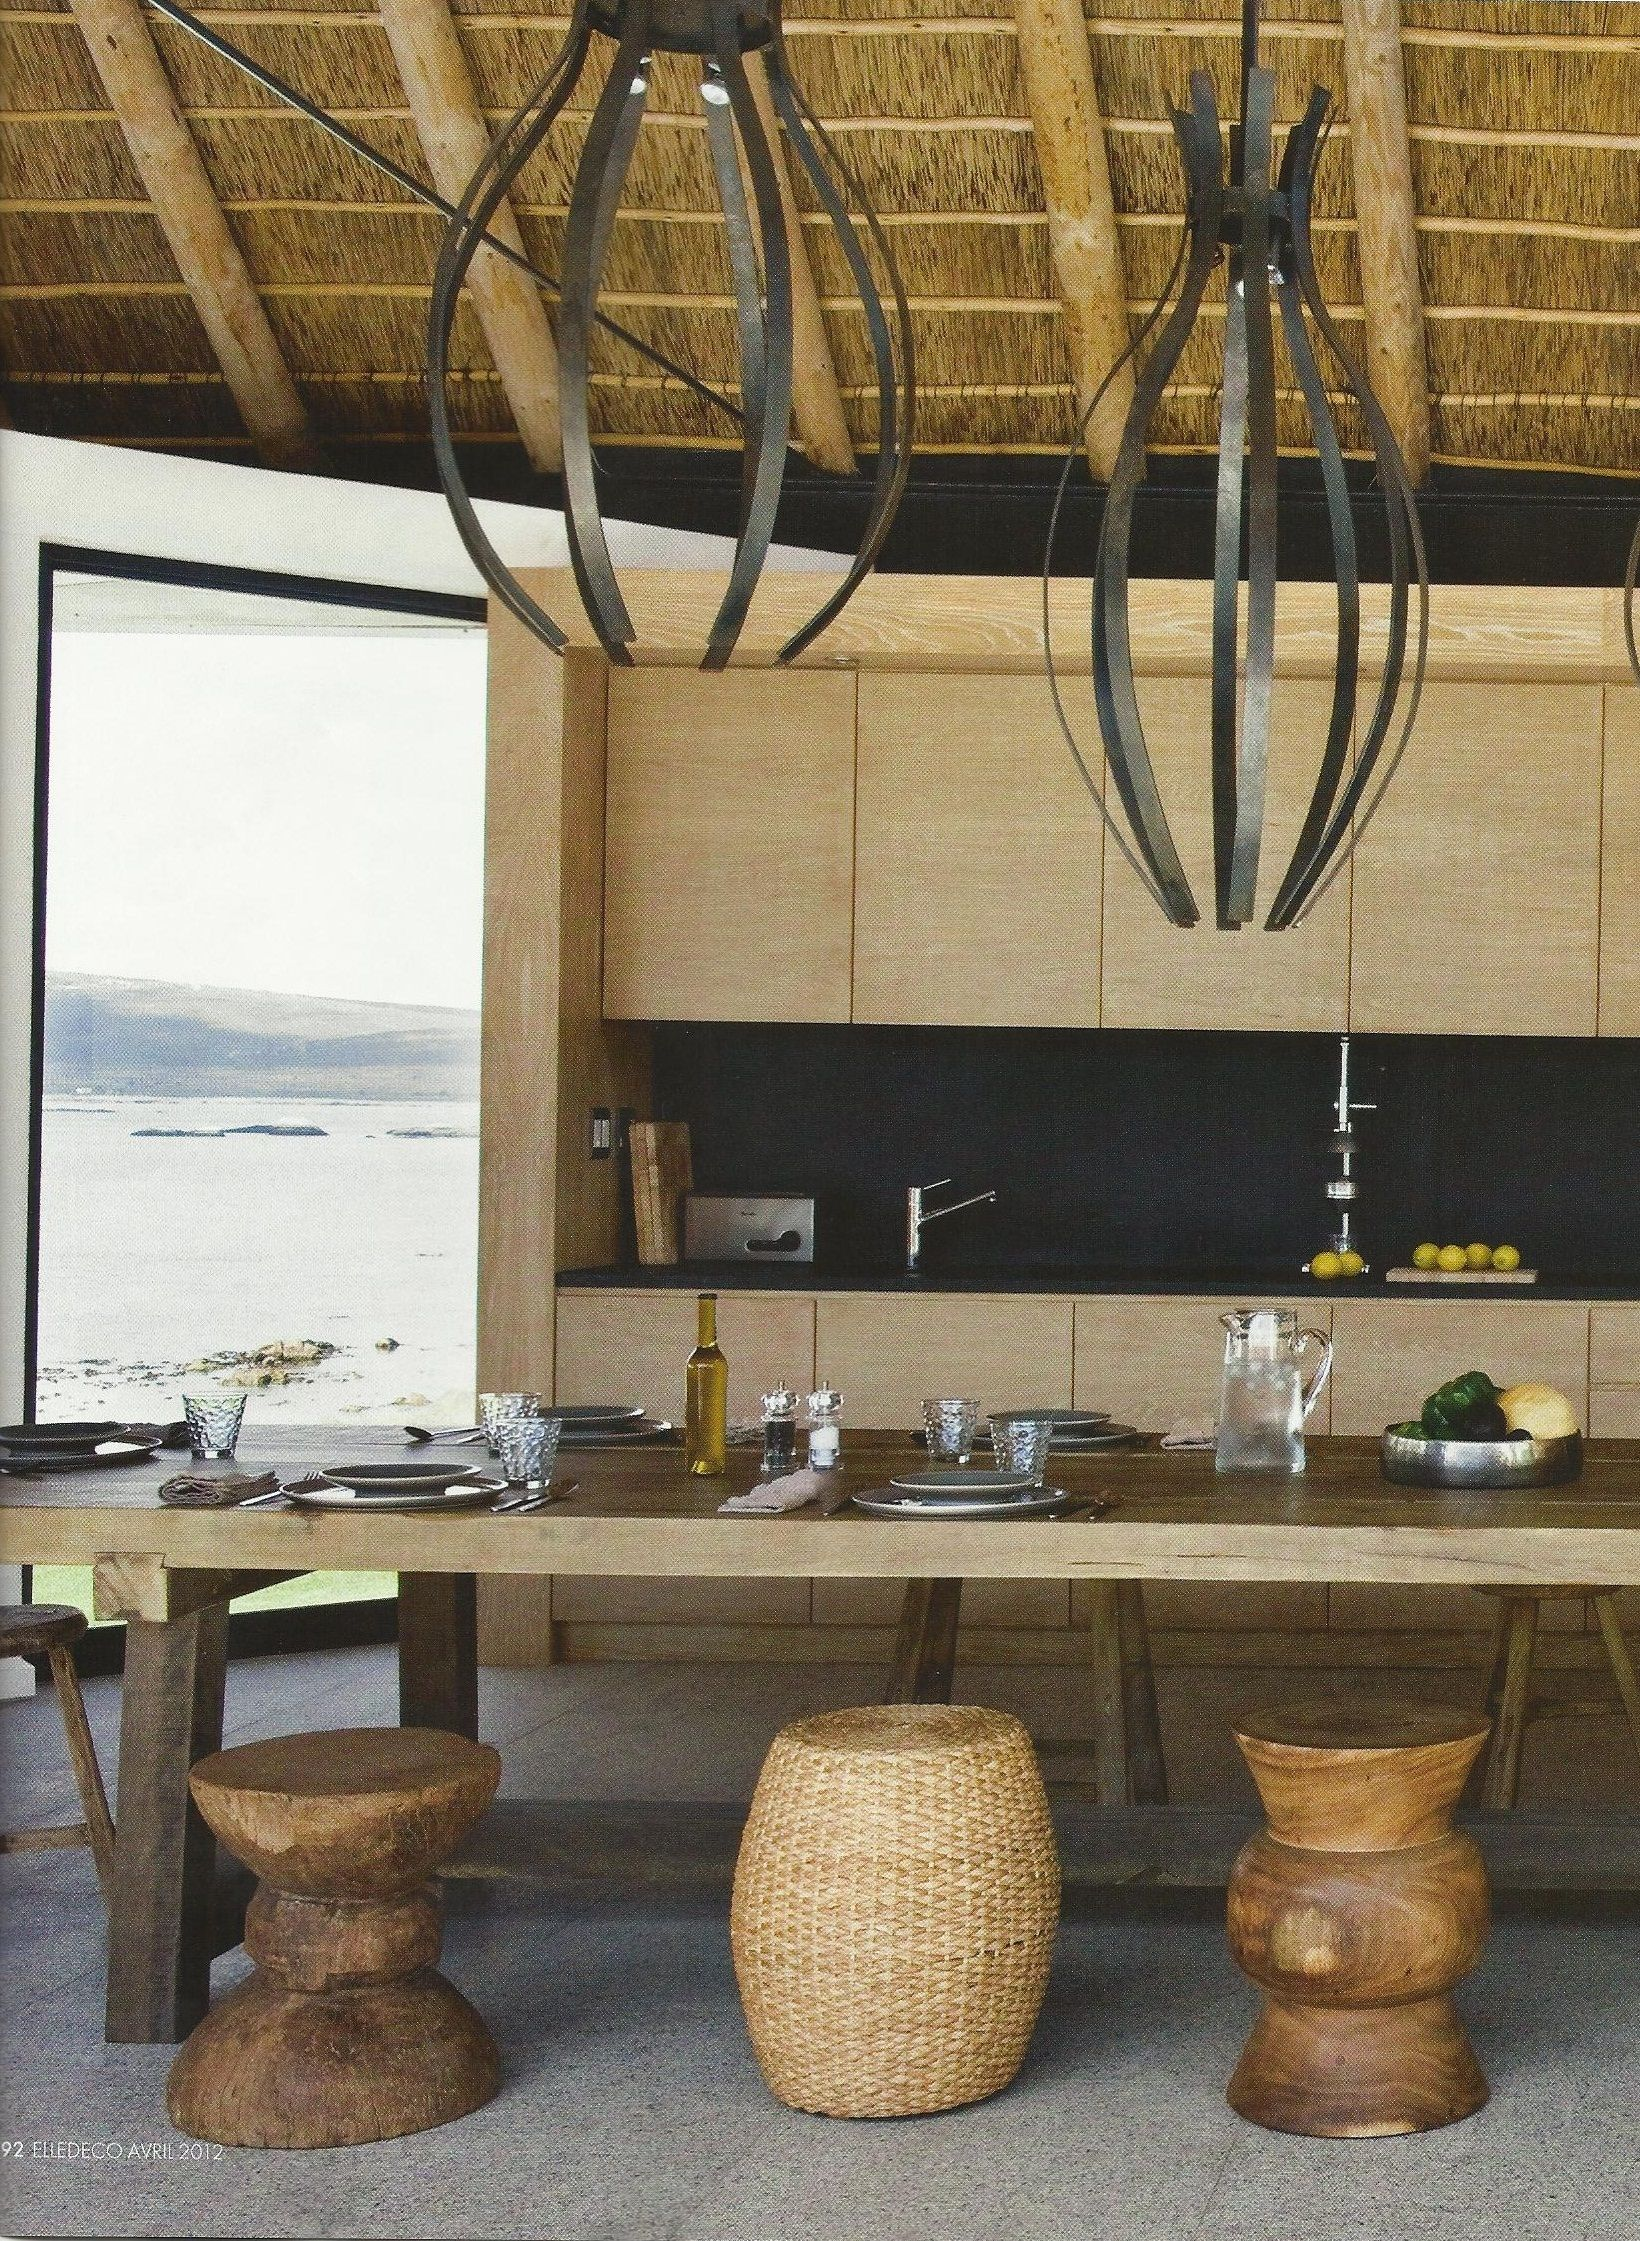 Great Looking Kitchen in South Africa.. wish we could see ...